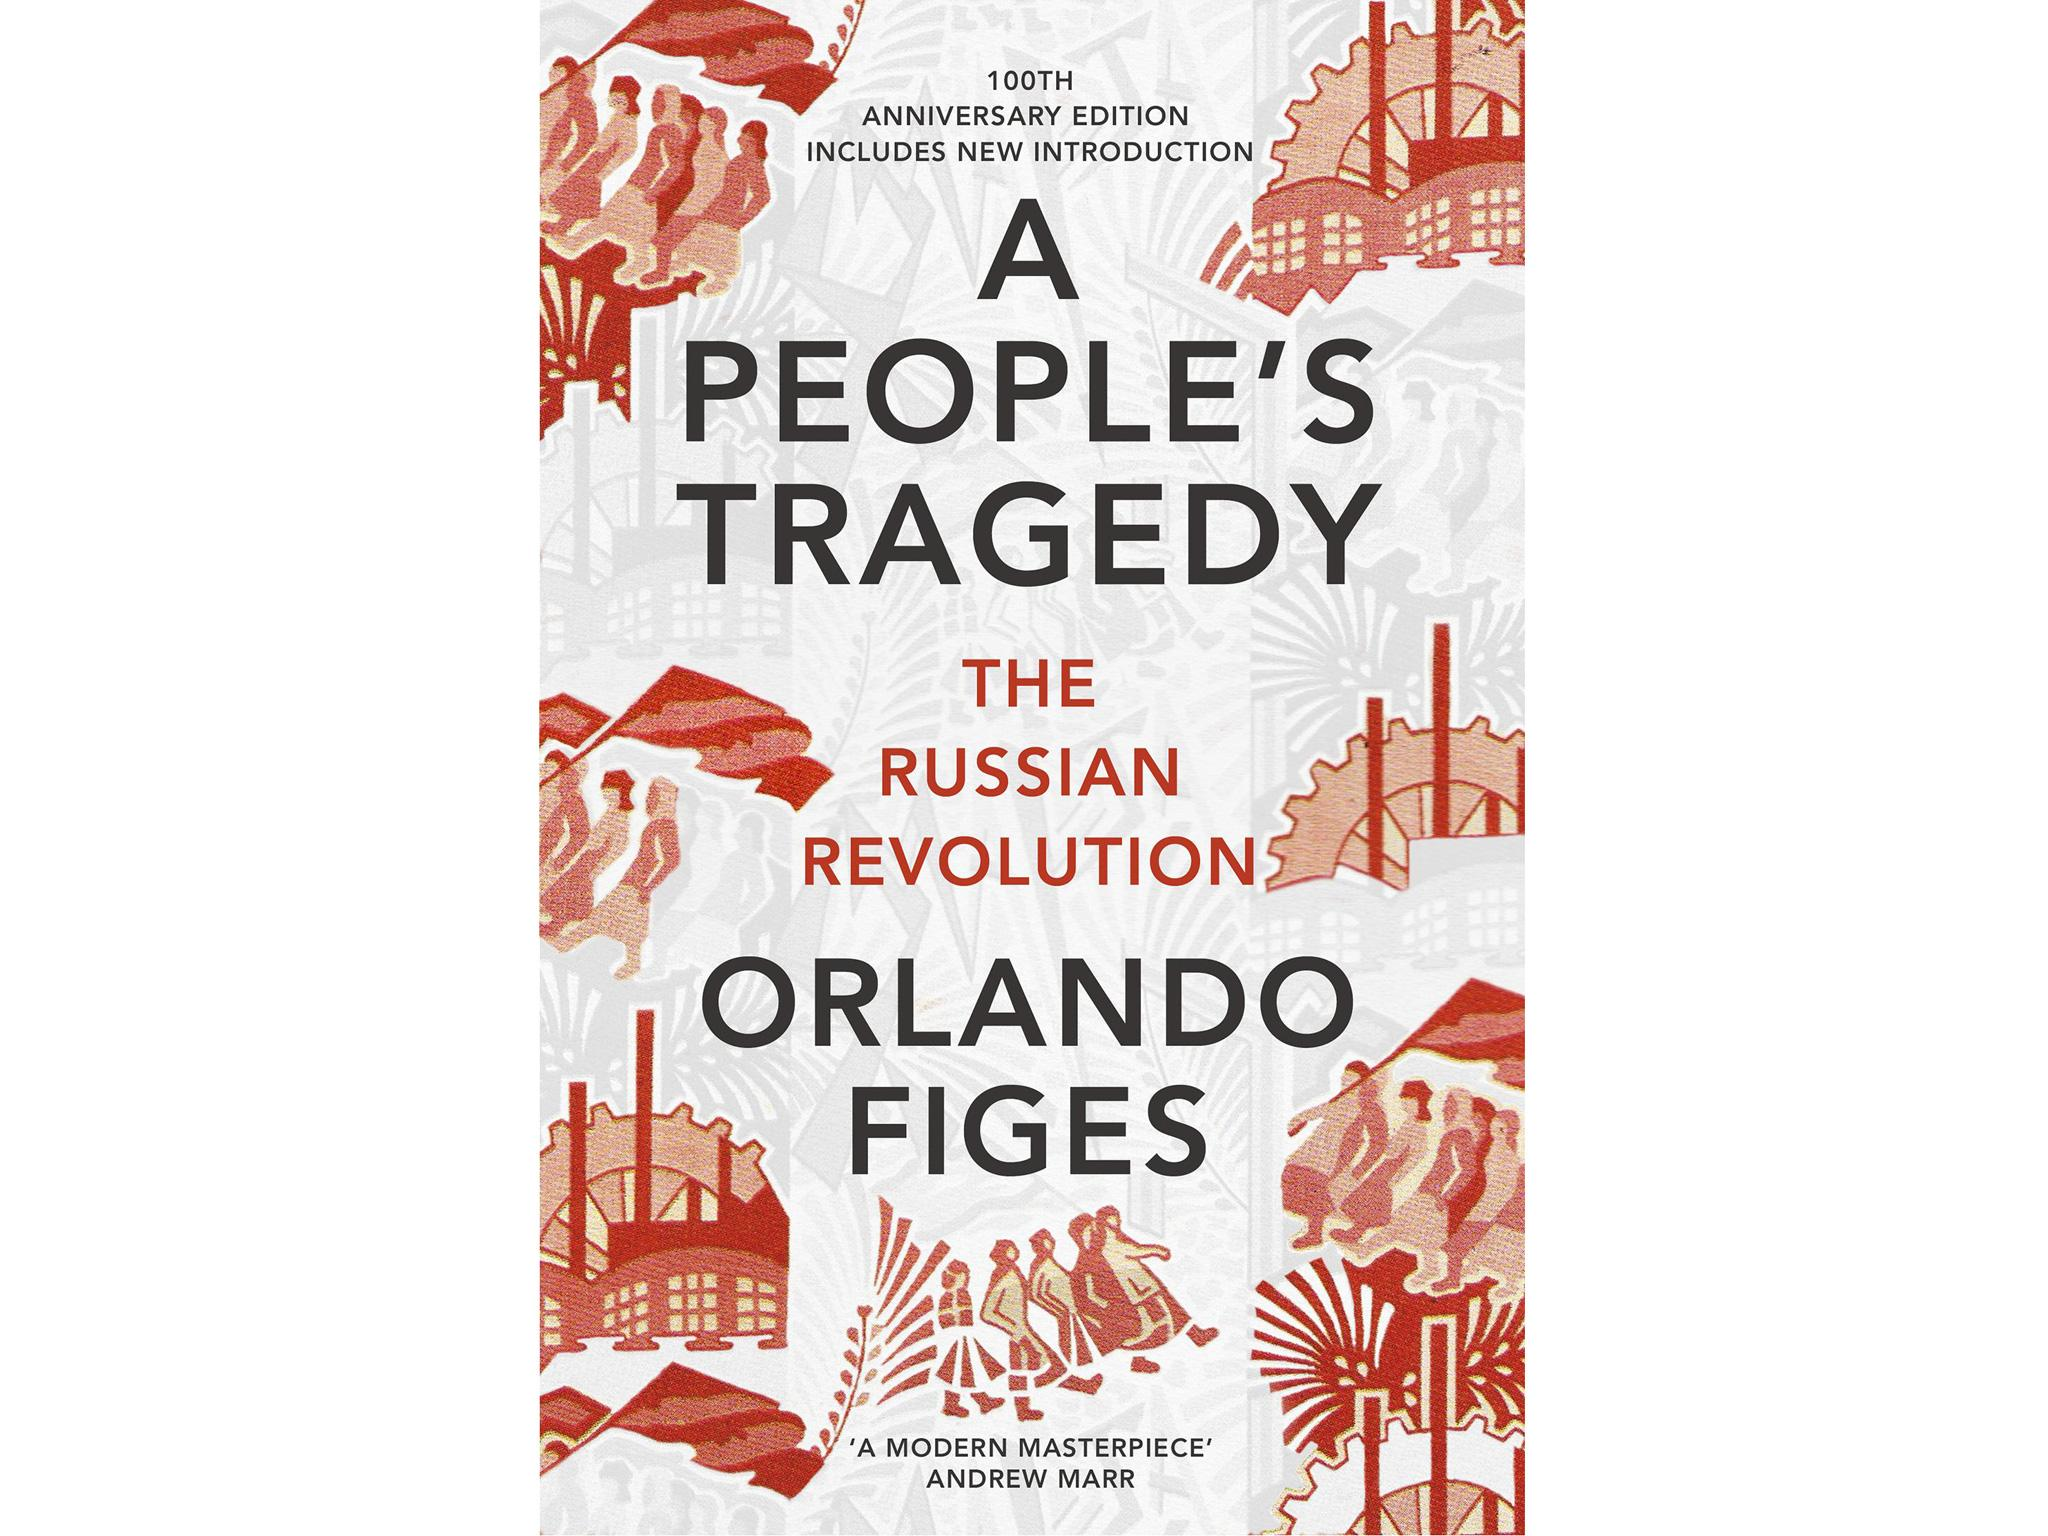 6 best russian history books the independent a peoples tragedy the russian revolution 1891 1924 by orlando figes 20 bodley head fandeluxe Image collections